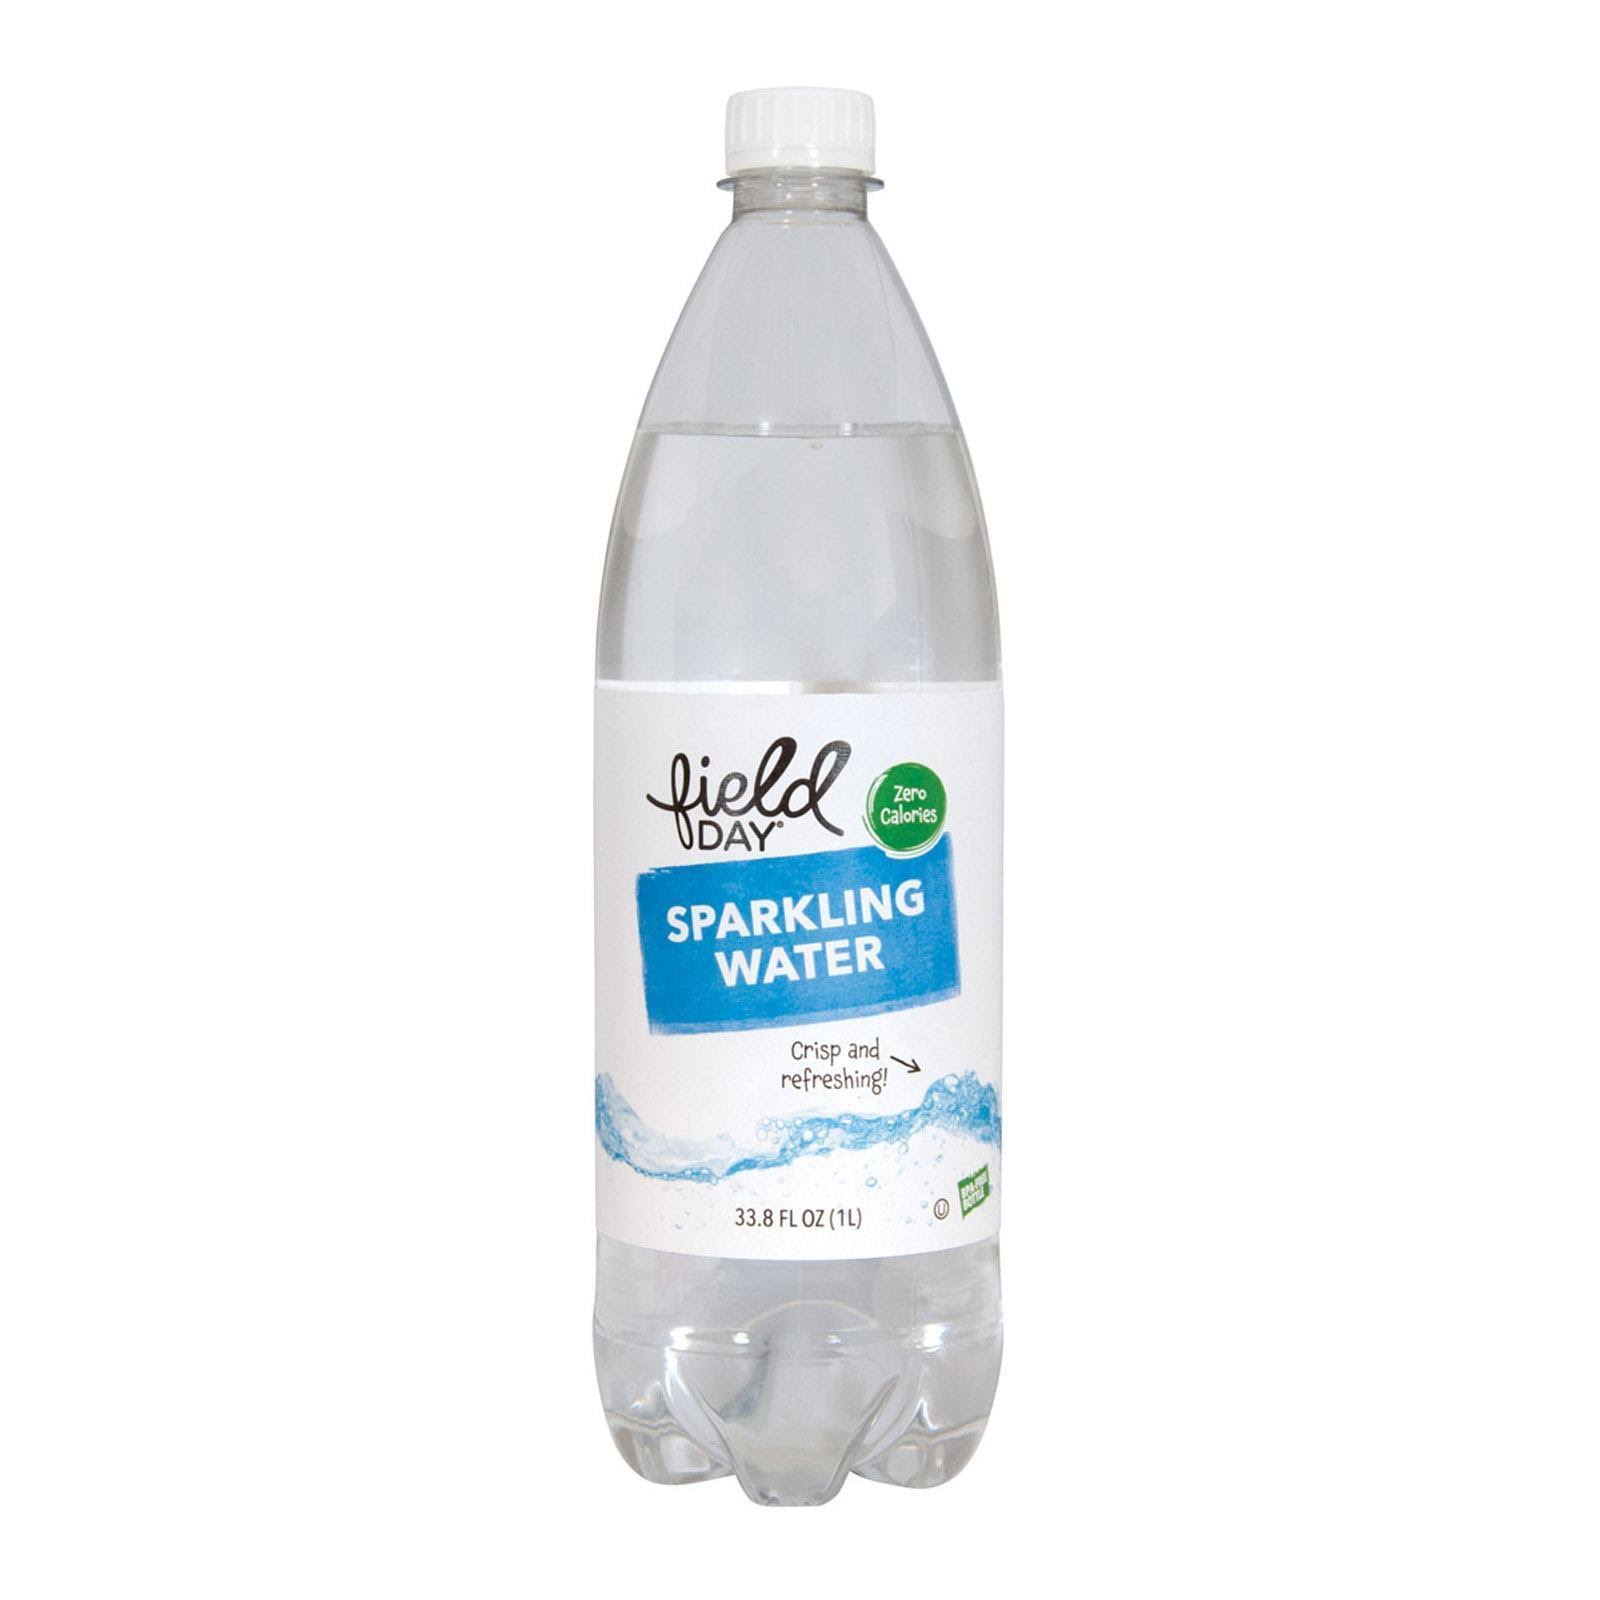 Field Day Plain Sparkling Water - Sparkling Water - 33.8 fl oz.